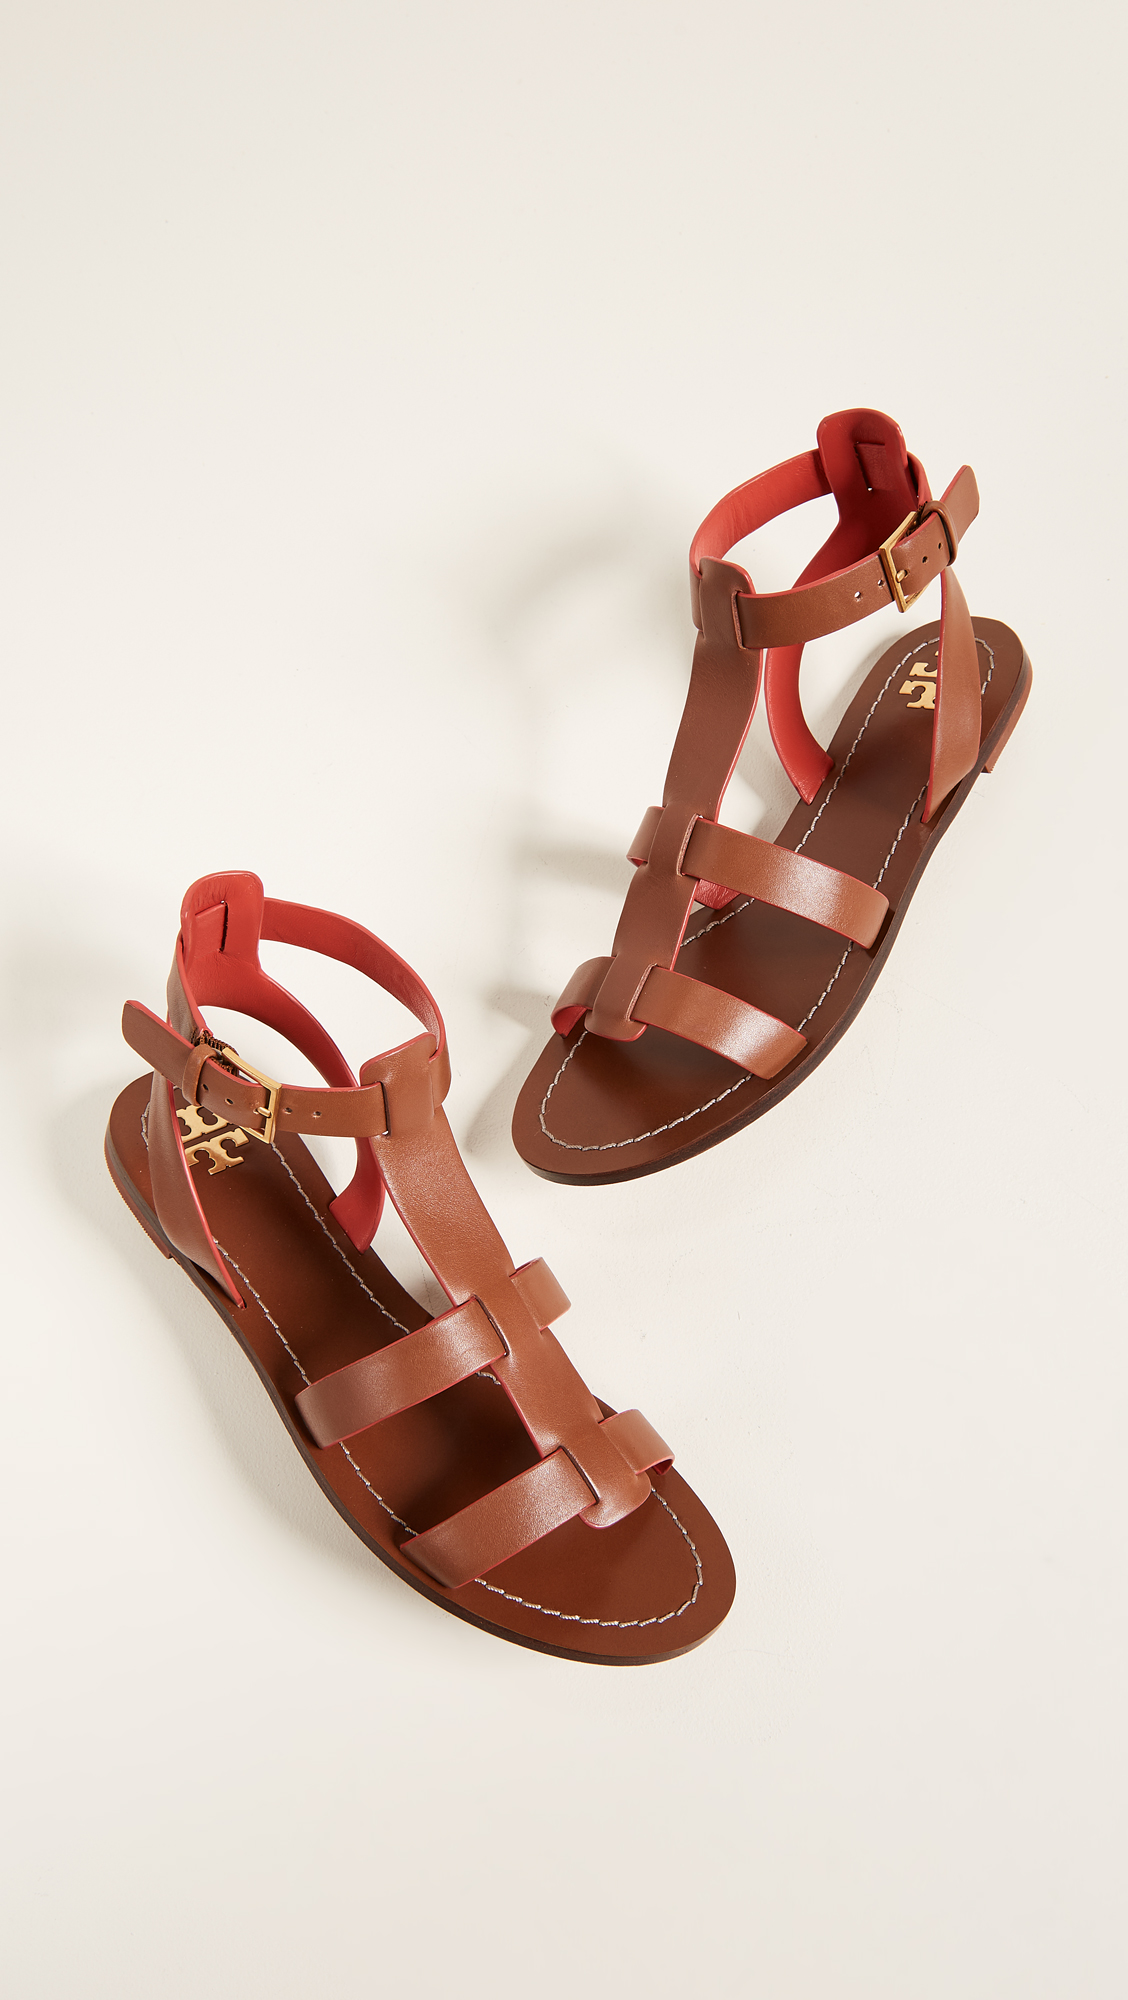 acd8b243260 Tory Burch Patos Gladiator Sandals